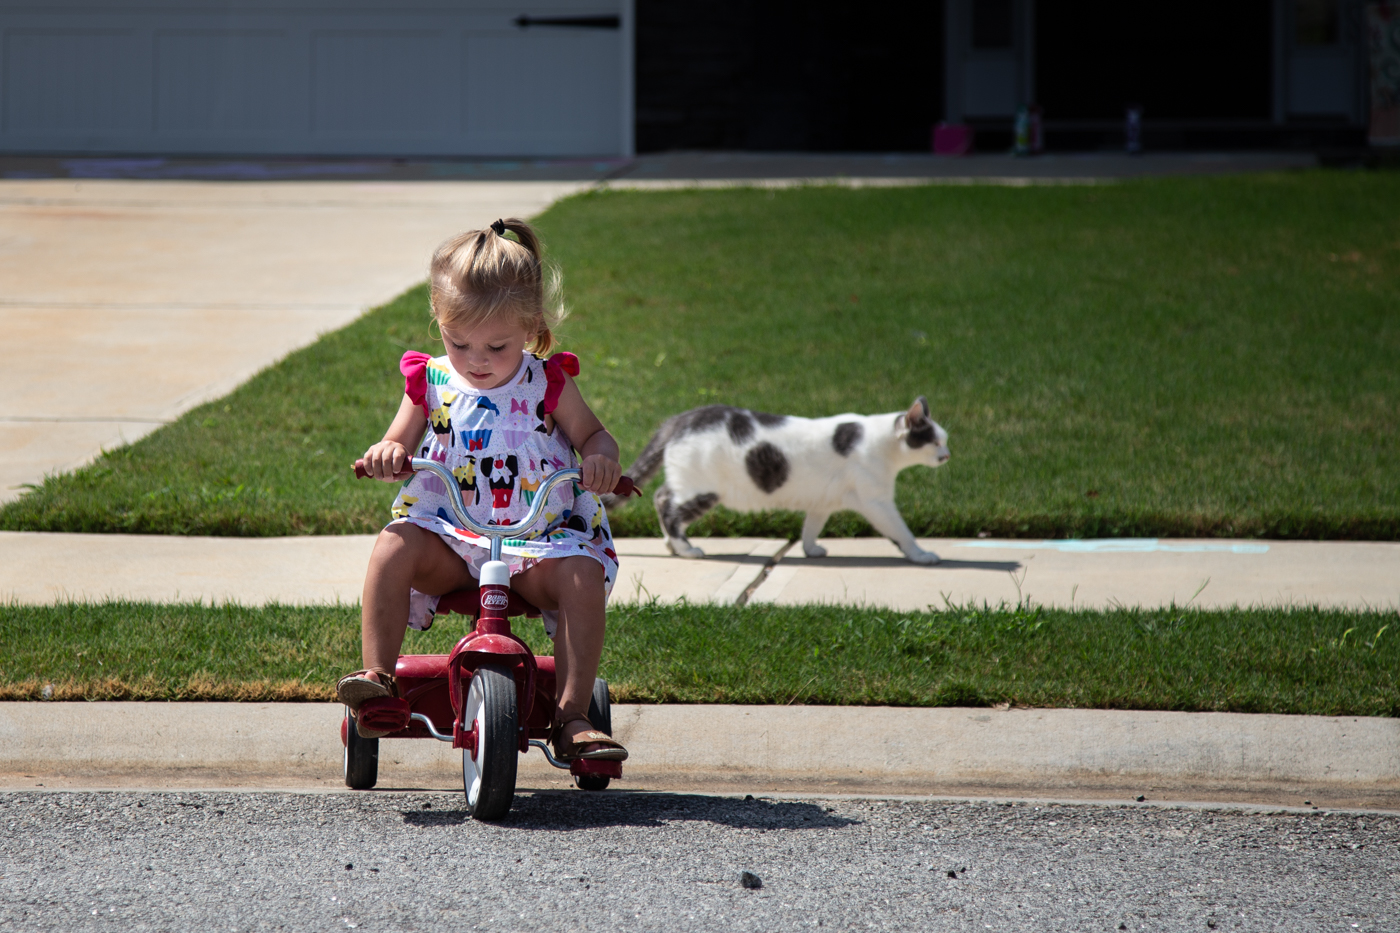 Little girl on a tricycle with her cat walking by